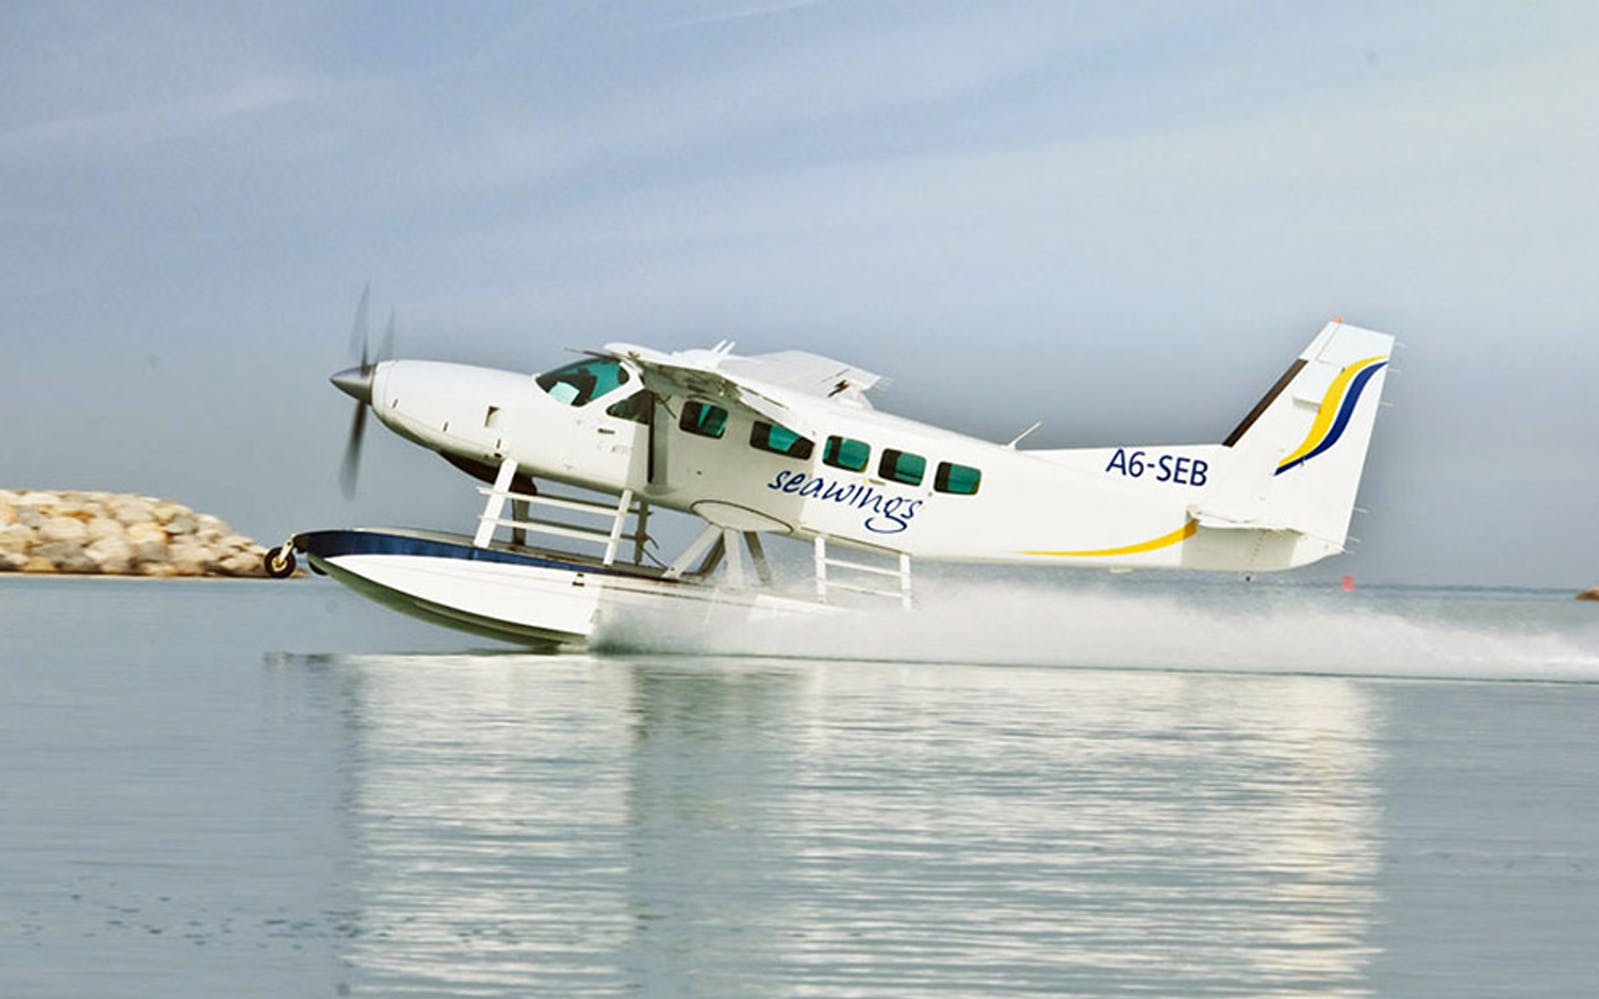 Seawings Seaplane Tour from Dubai to Abu Dhabi with Ferrari World